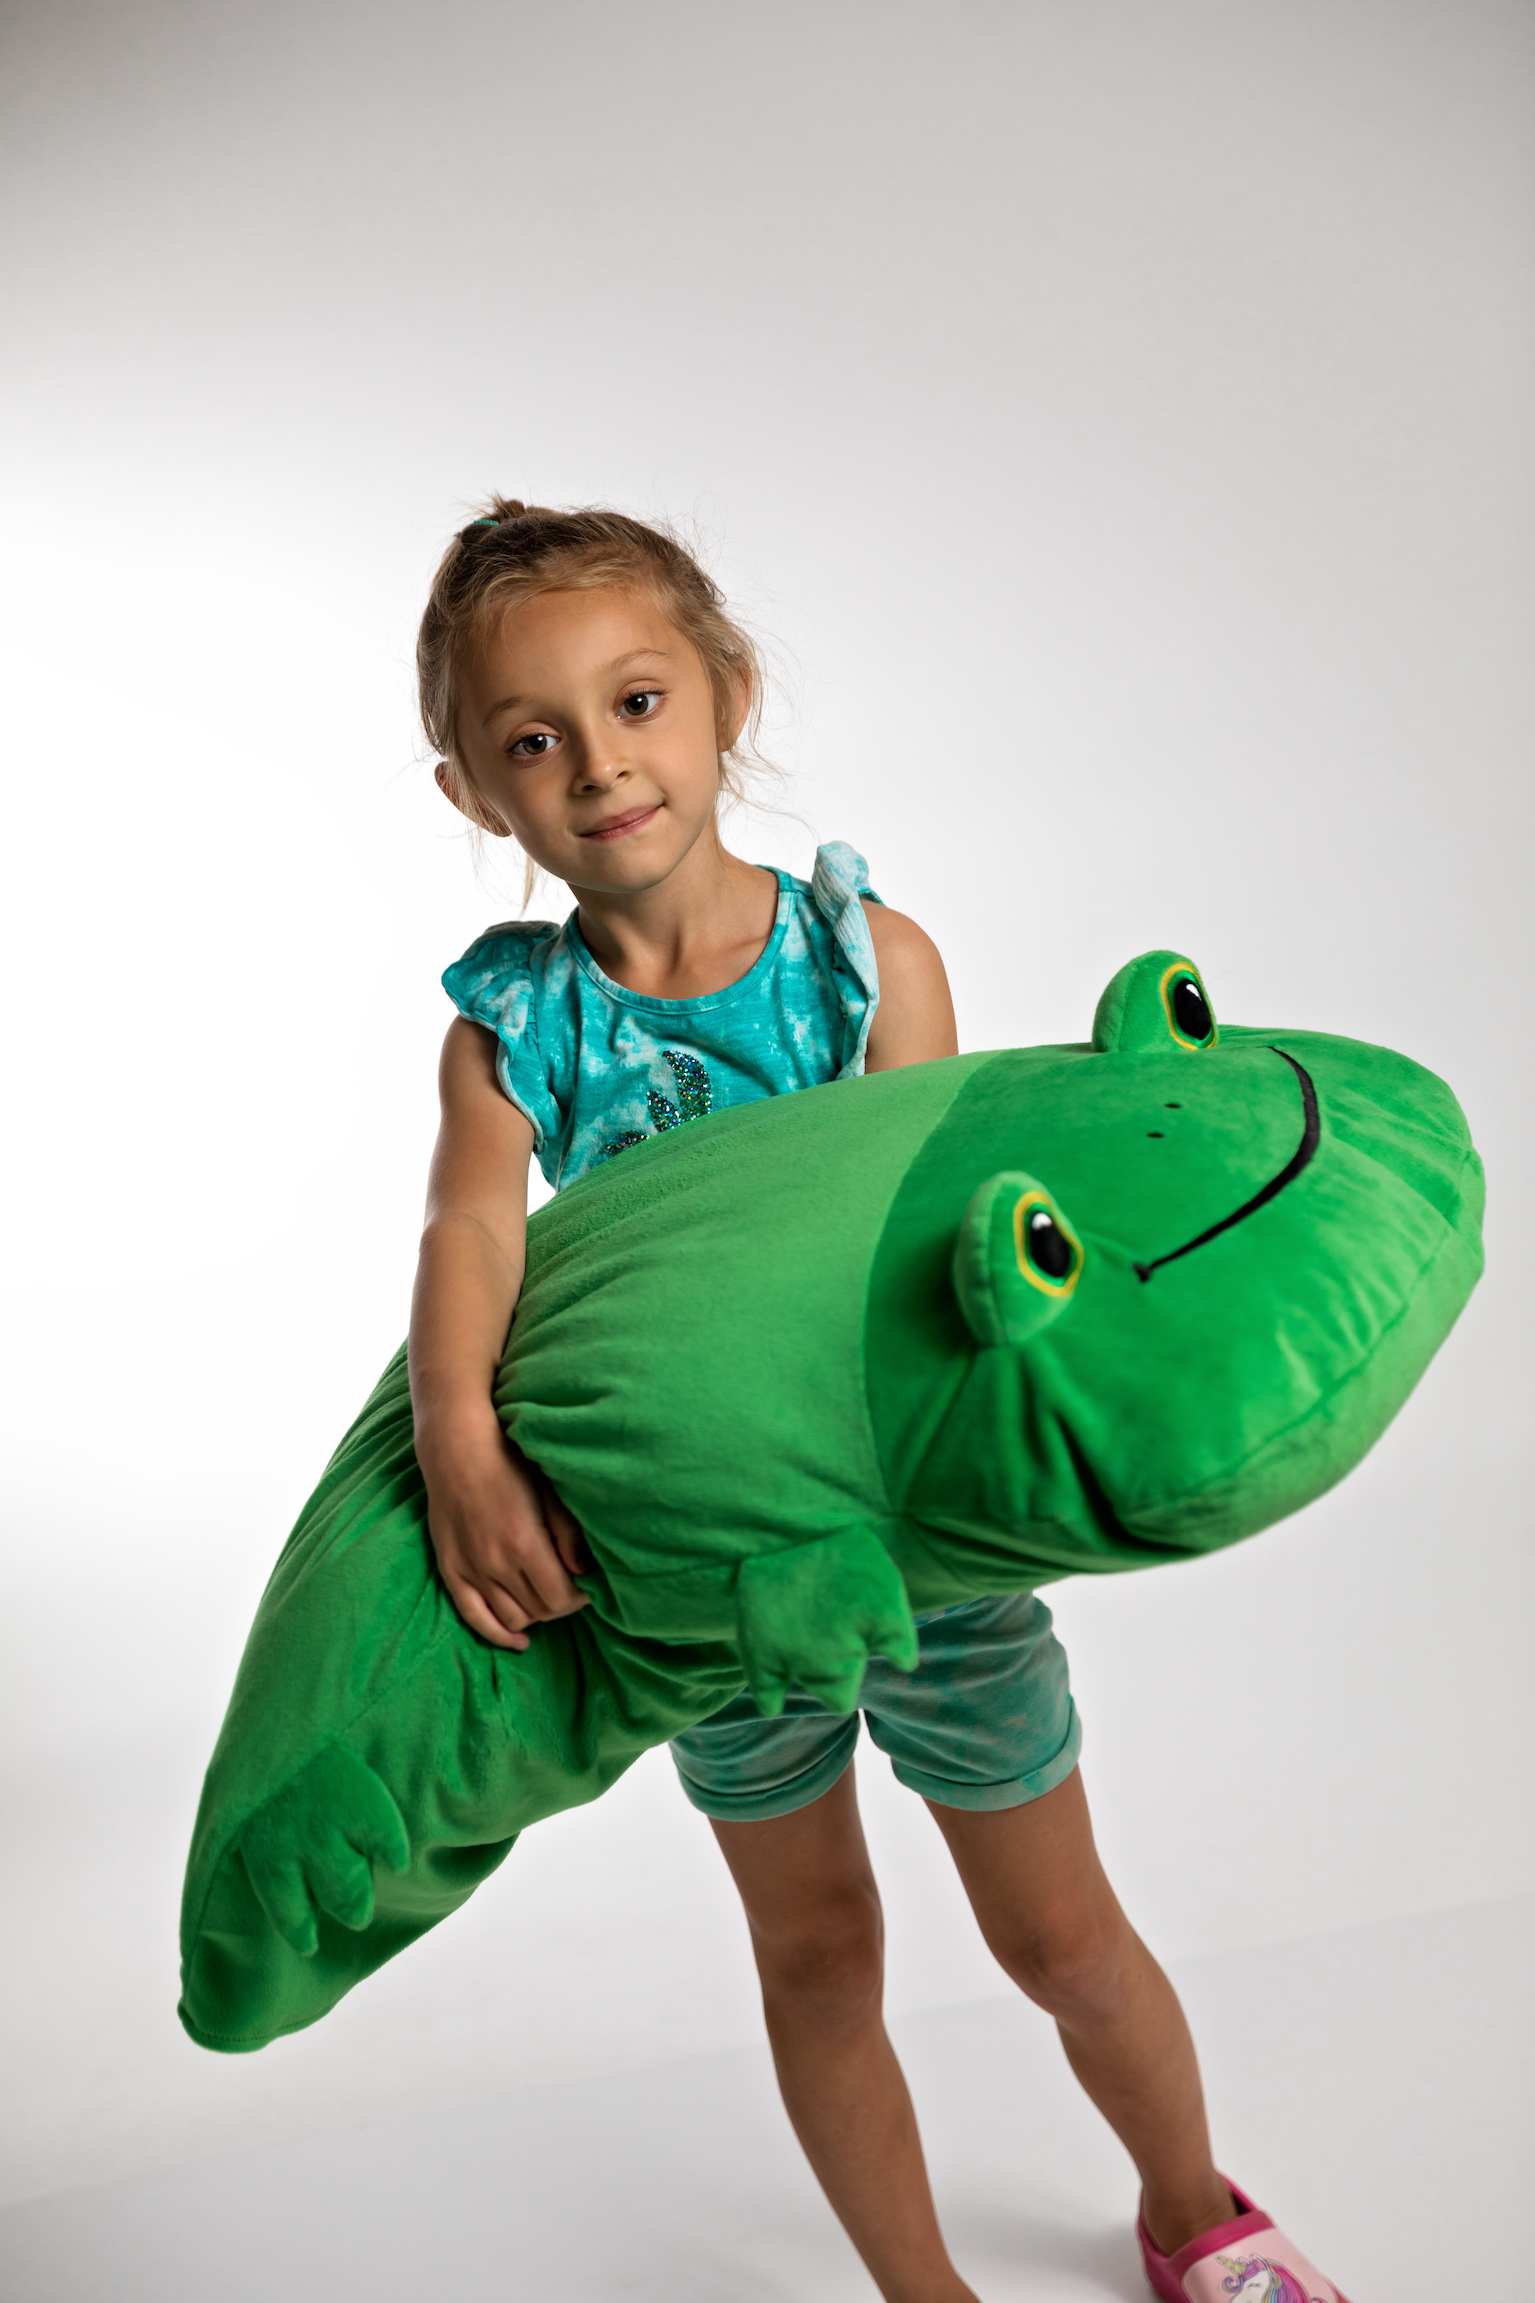 Cuddletop Set To Replace Stuffed Animals With Kickstarter Launch